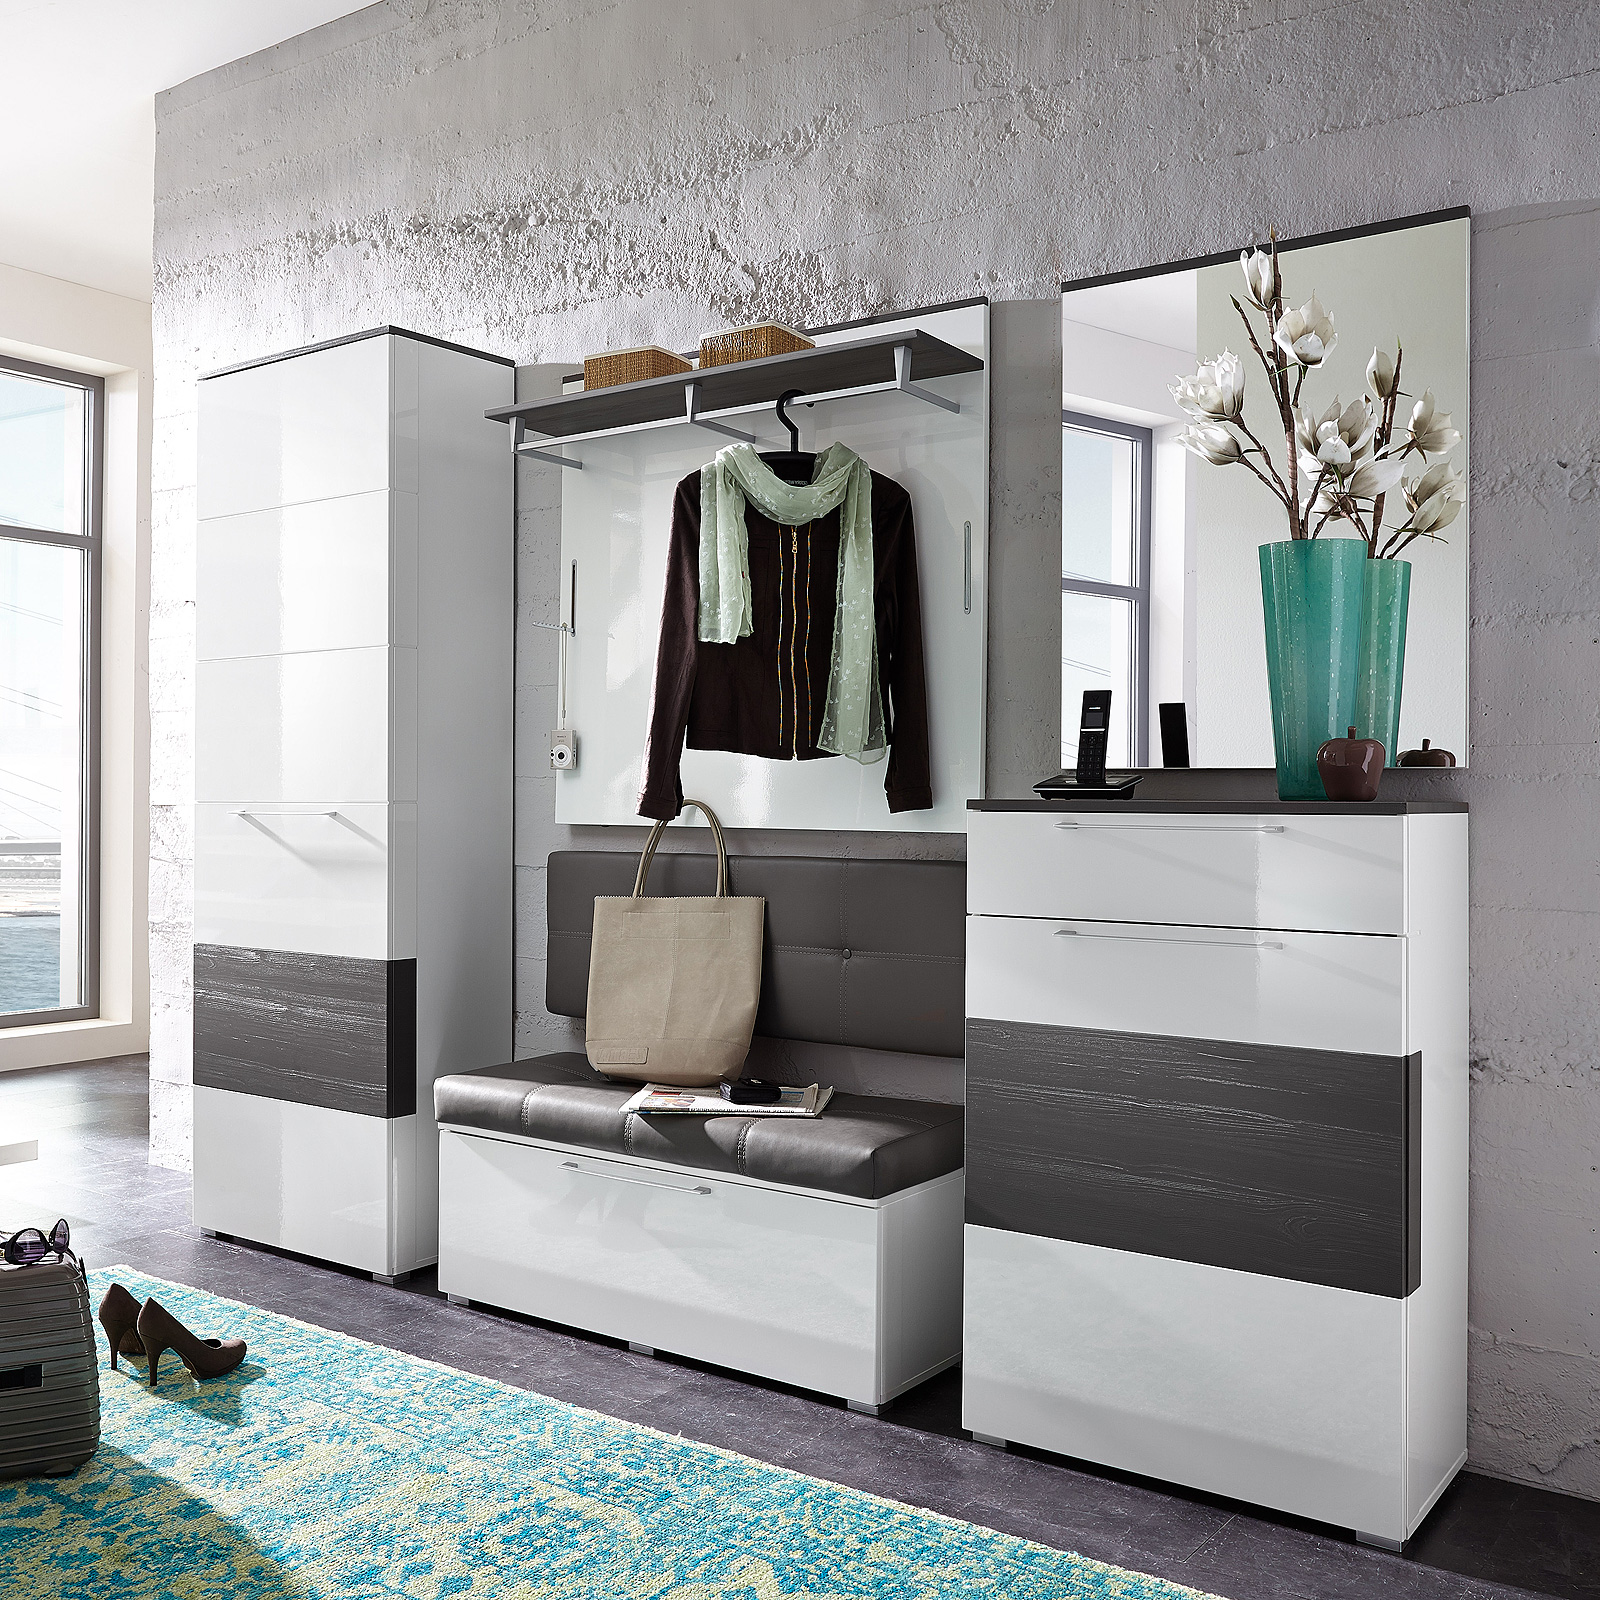 garderobenset reno garderobe schrank bank spiegel in weiss hochglanz. Black Bedroom Furniture Sets. Home Design Ideas